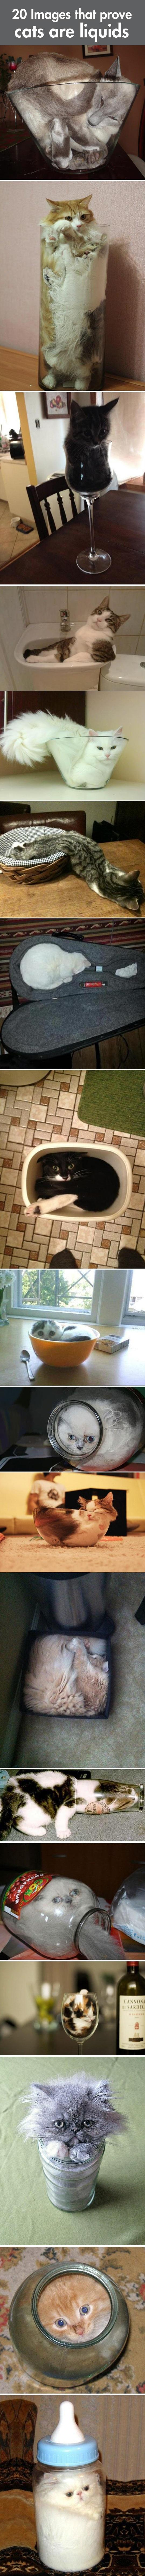 Definitive Proof That Cats Are Basically Liquids... -   Misc